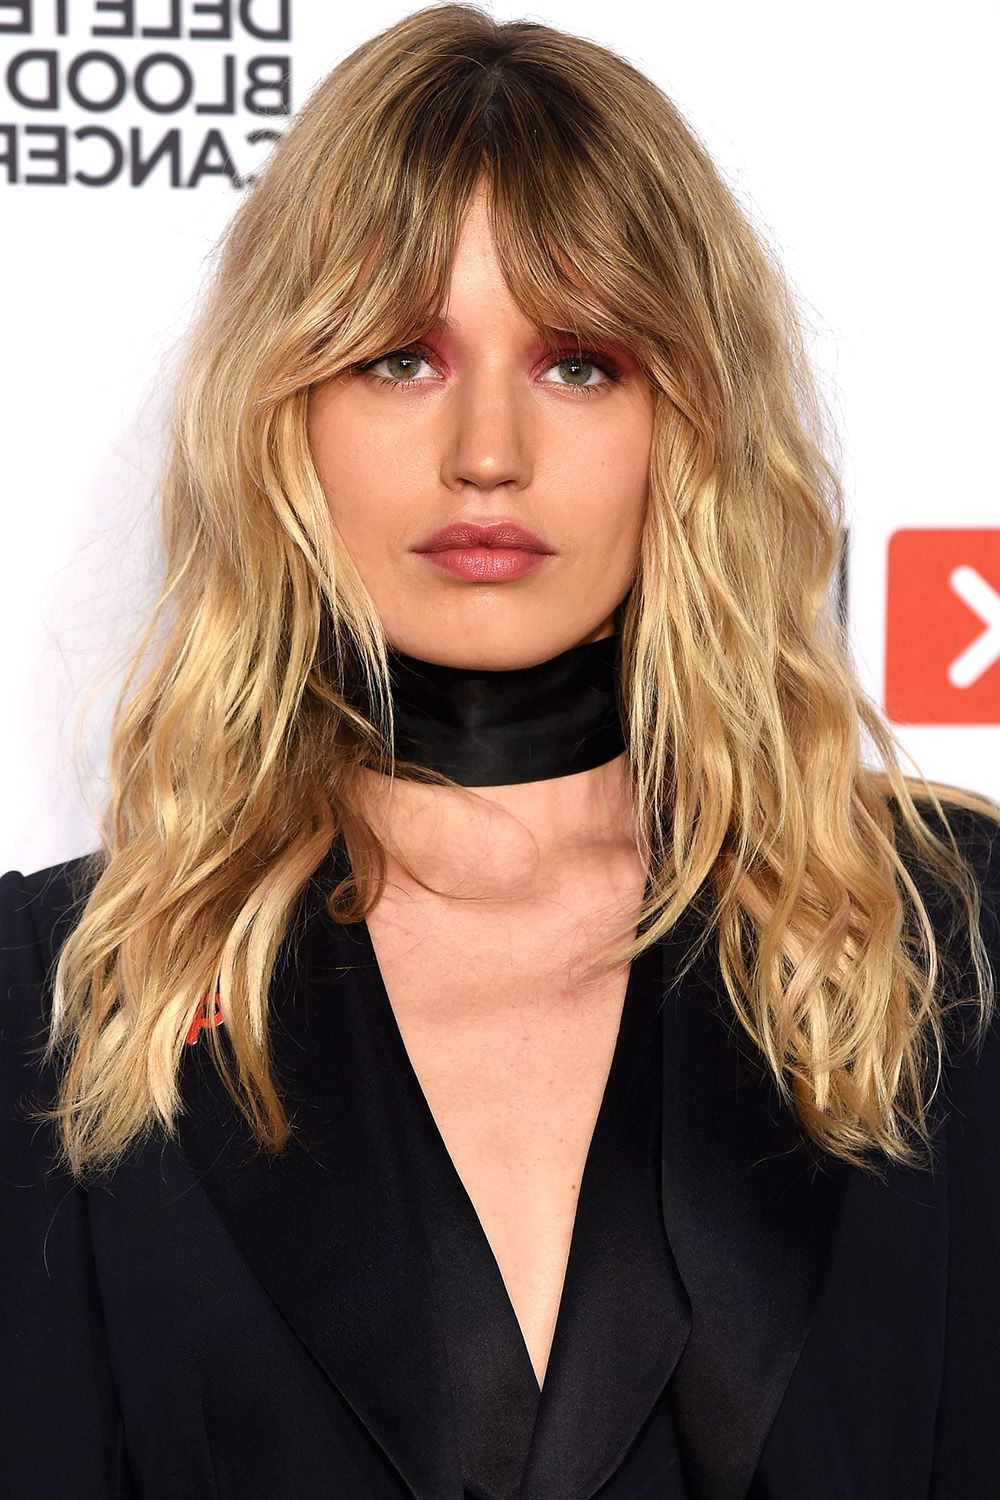 40 Best Medium Hairstyles – Celebrities With Shoulder Length Haircuts With Regard To Short Haircuts For Petite Women (View 17 of 25)